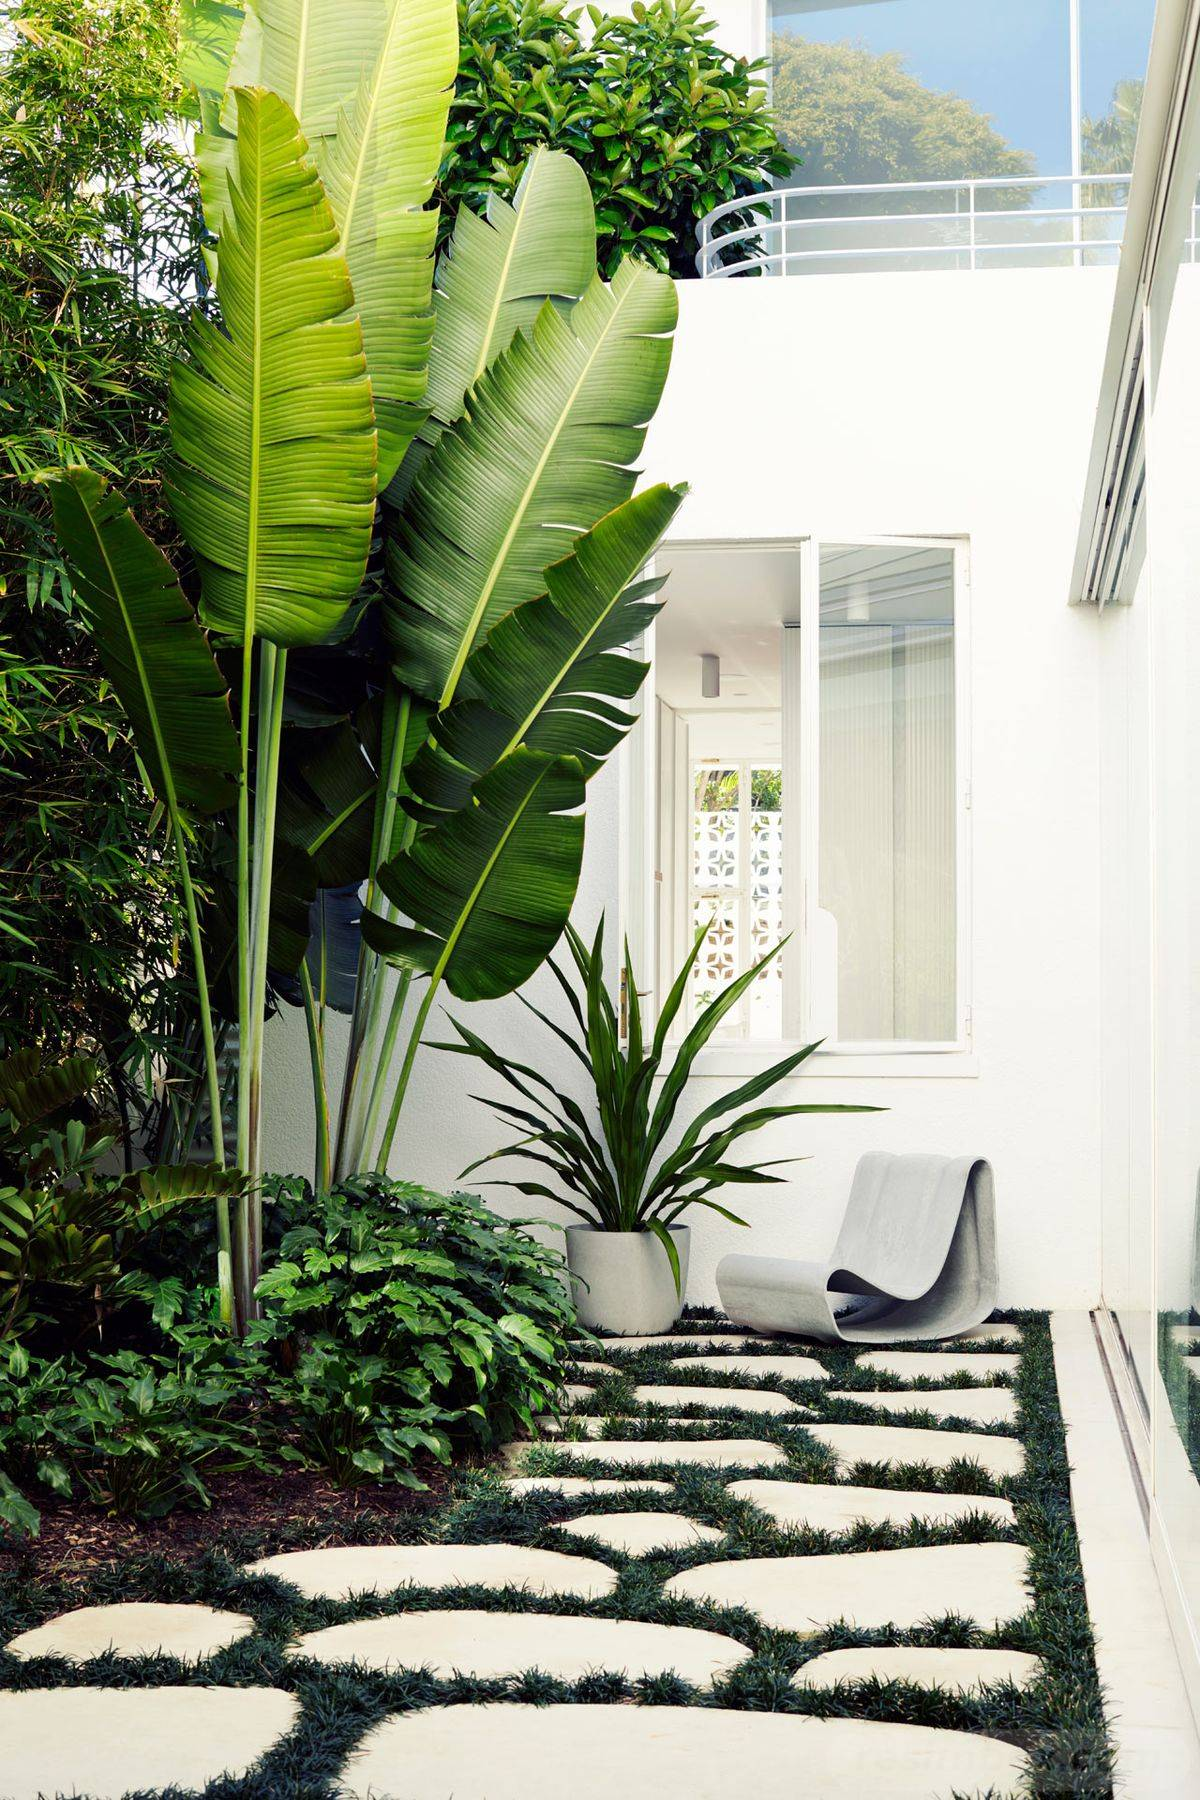 tropical garden ideas-97601516911274932